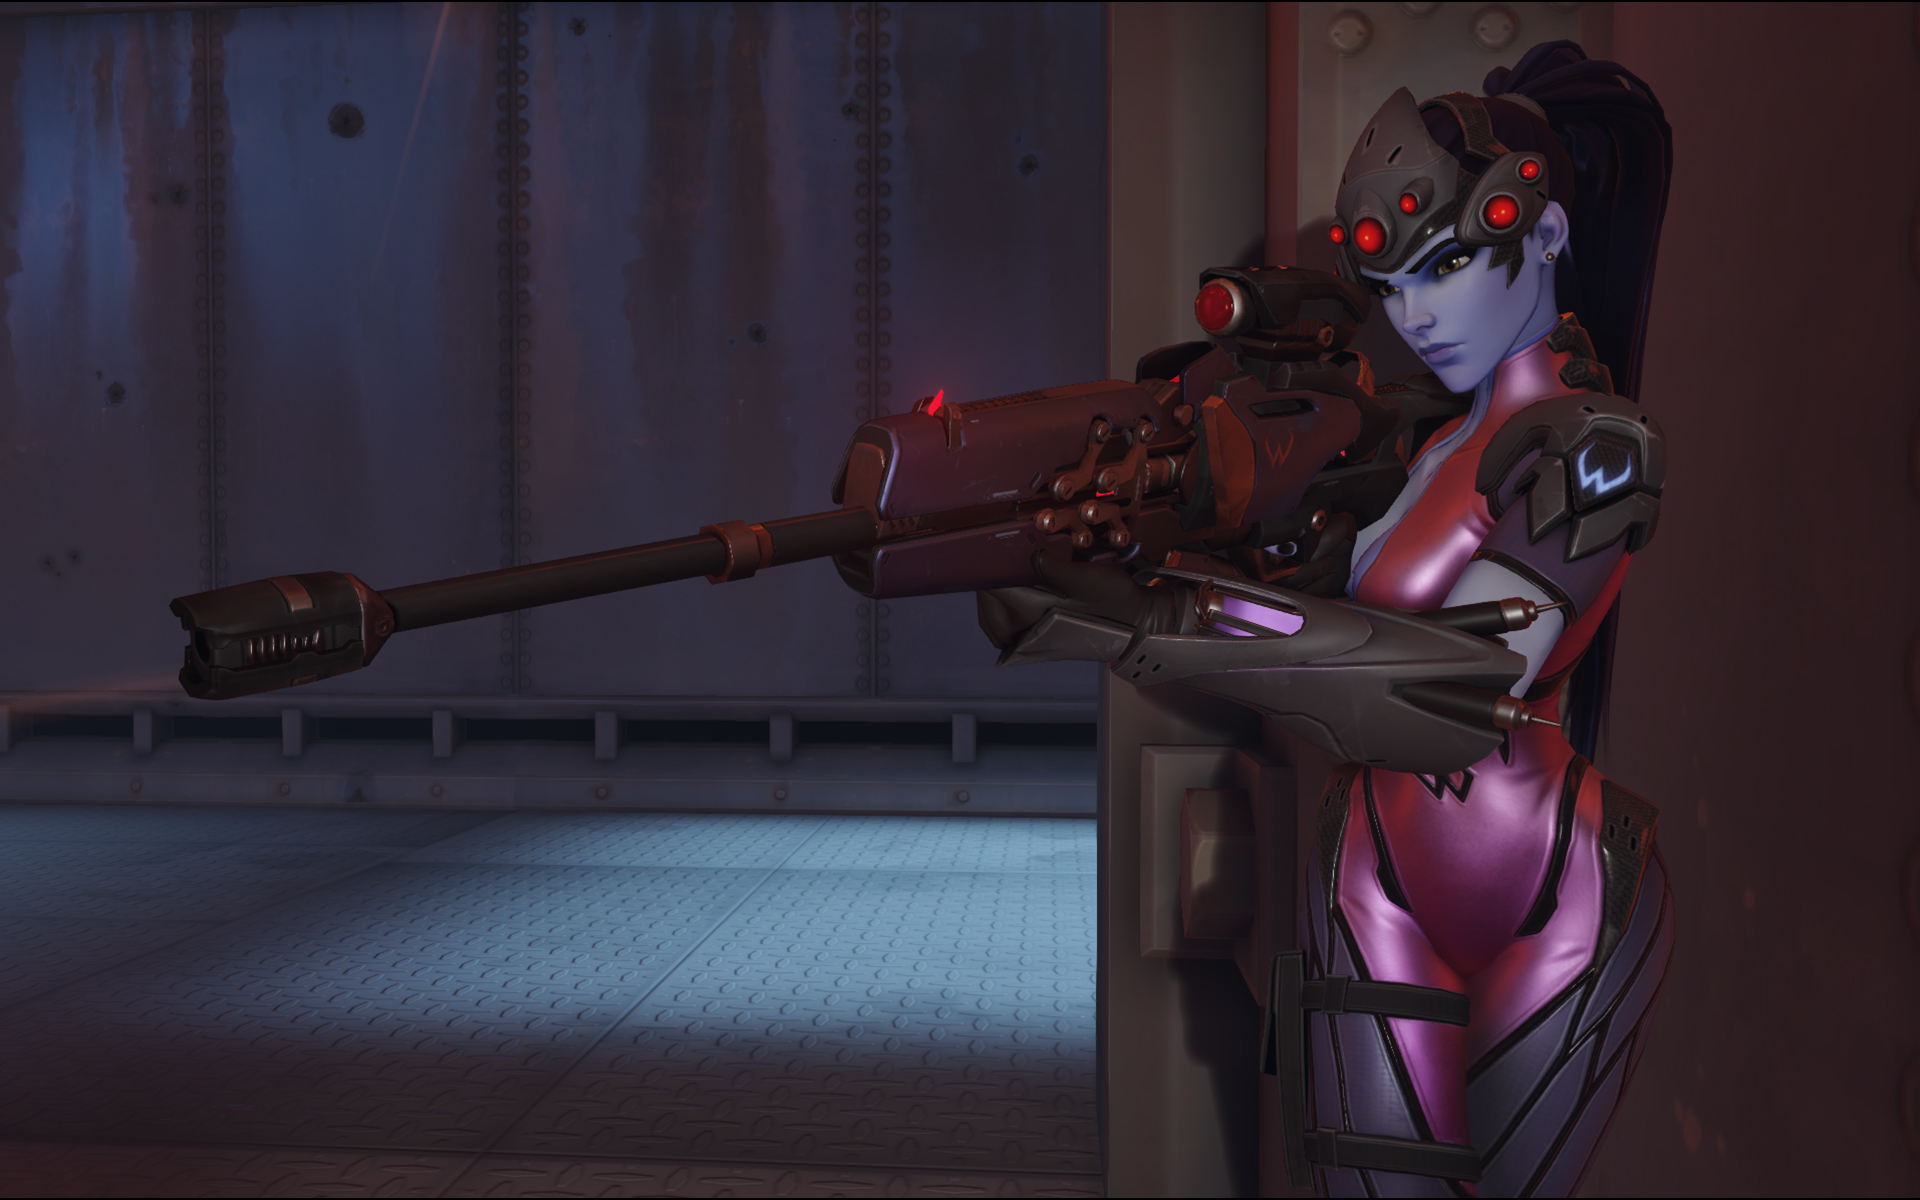 Widowmaker_Overwatch_004